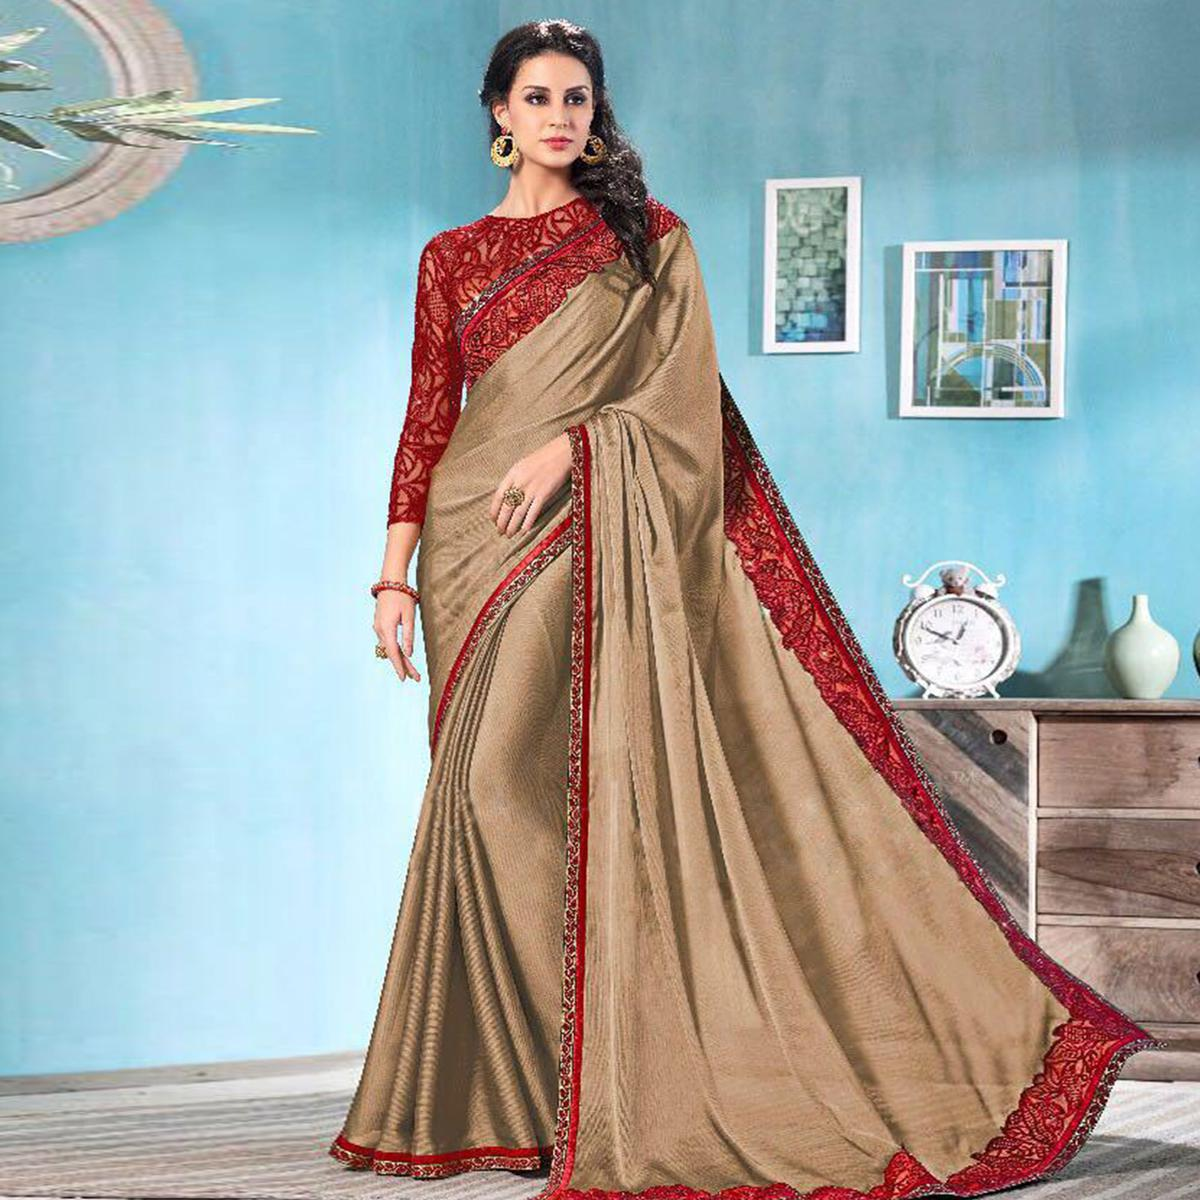 Rich Beige Partywear Solid Moss Chiffon Saree With Embroidered Blouse